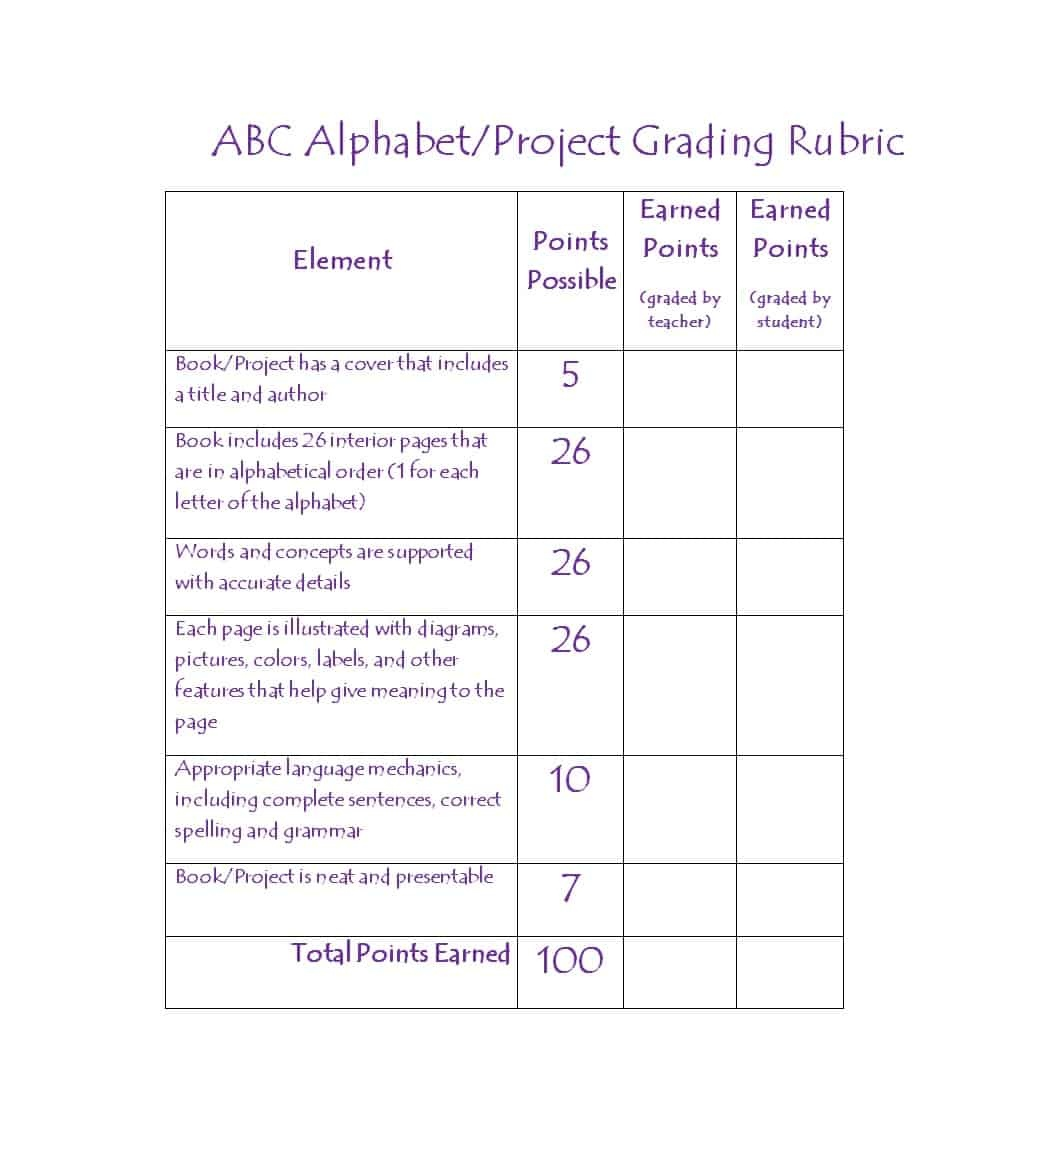 46 Editable Rubric Templates (Word Format) ᐅ Template Lab - Free Printable Art Rubrics